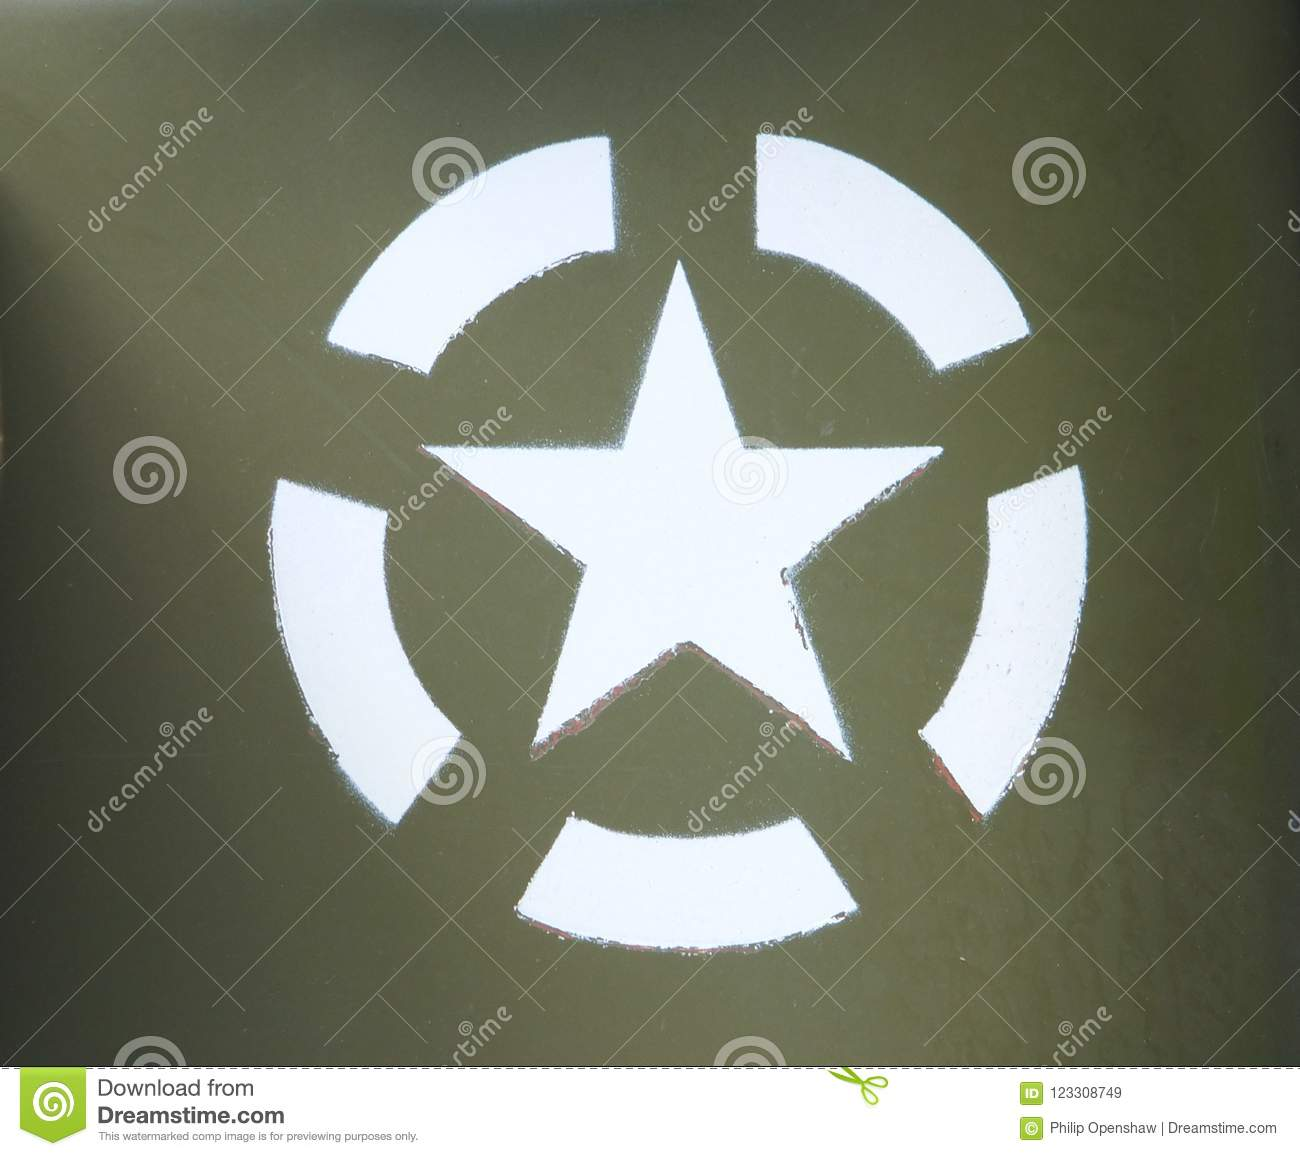 White US army star in an invasion circle stenciled on an olive green painted military vehicle